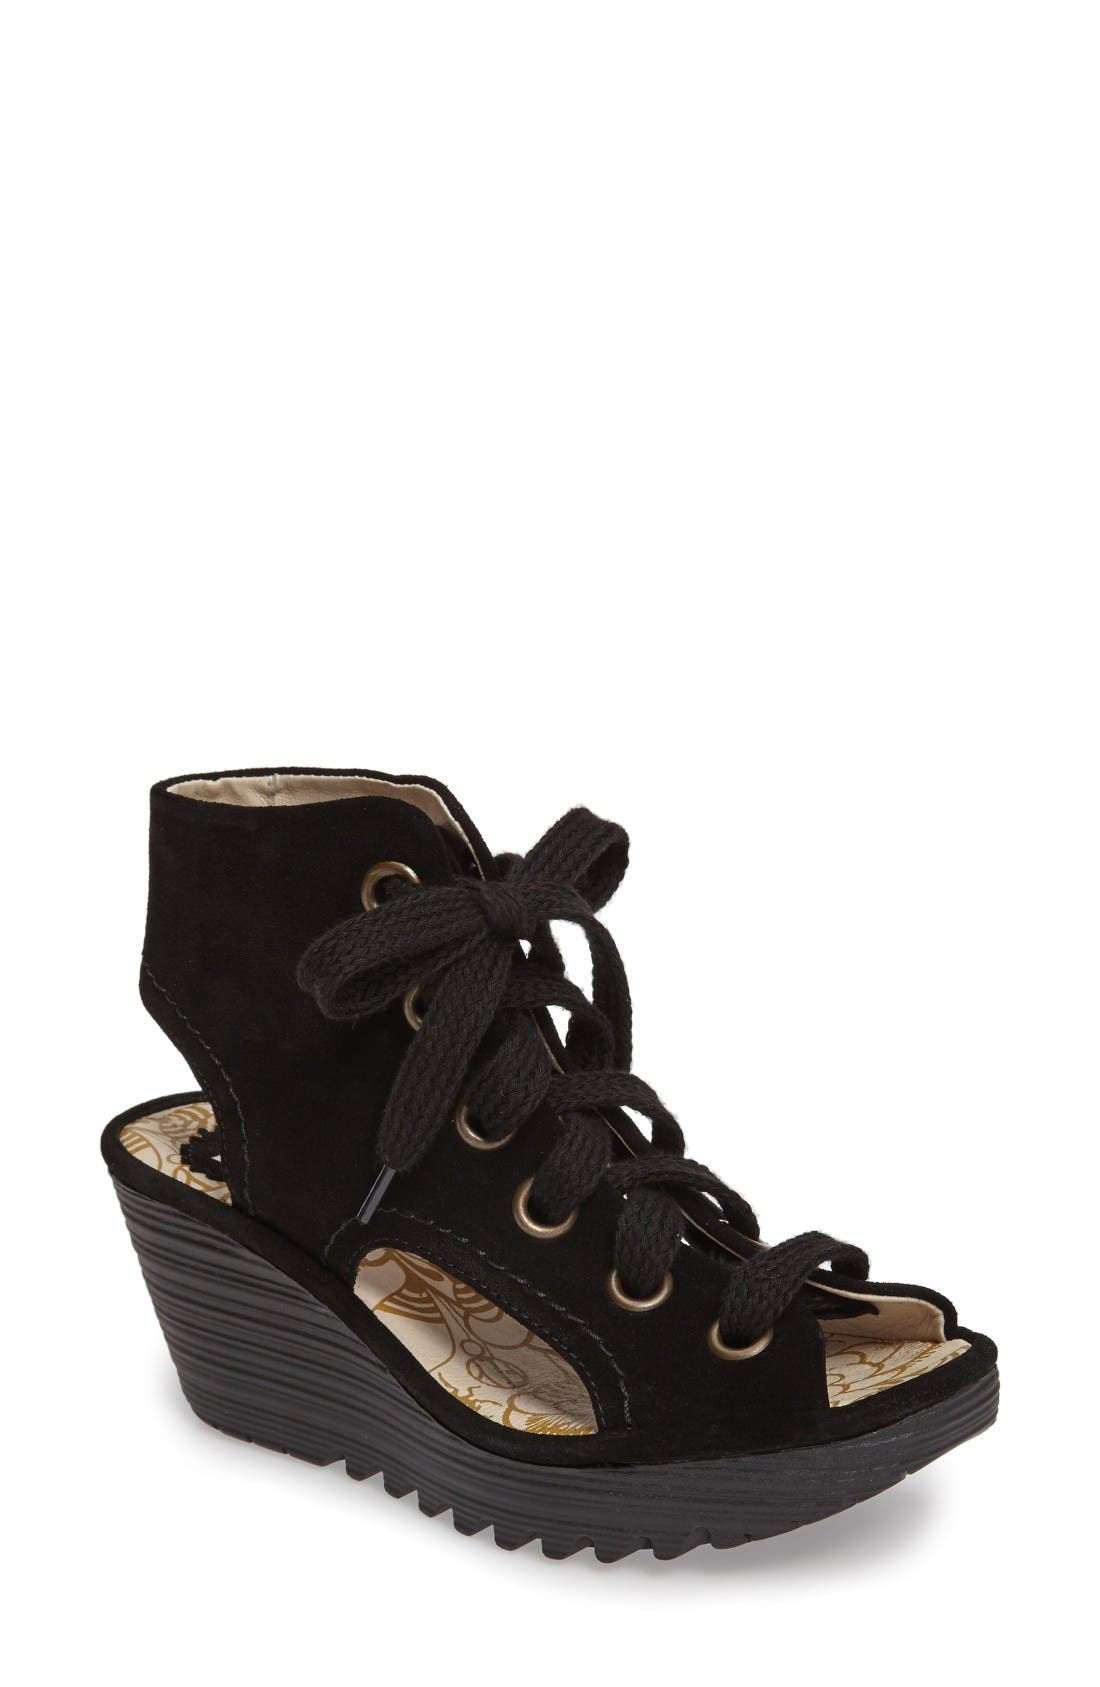 FLY LONDON Yaba Lace-Up Platform Wedge